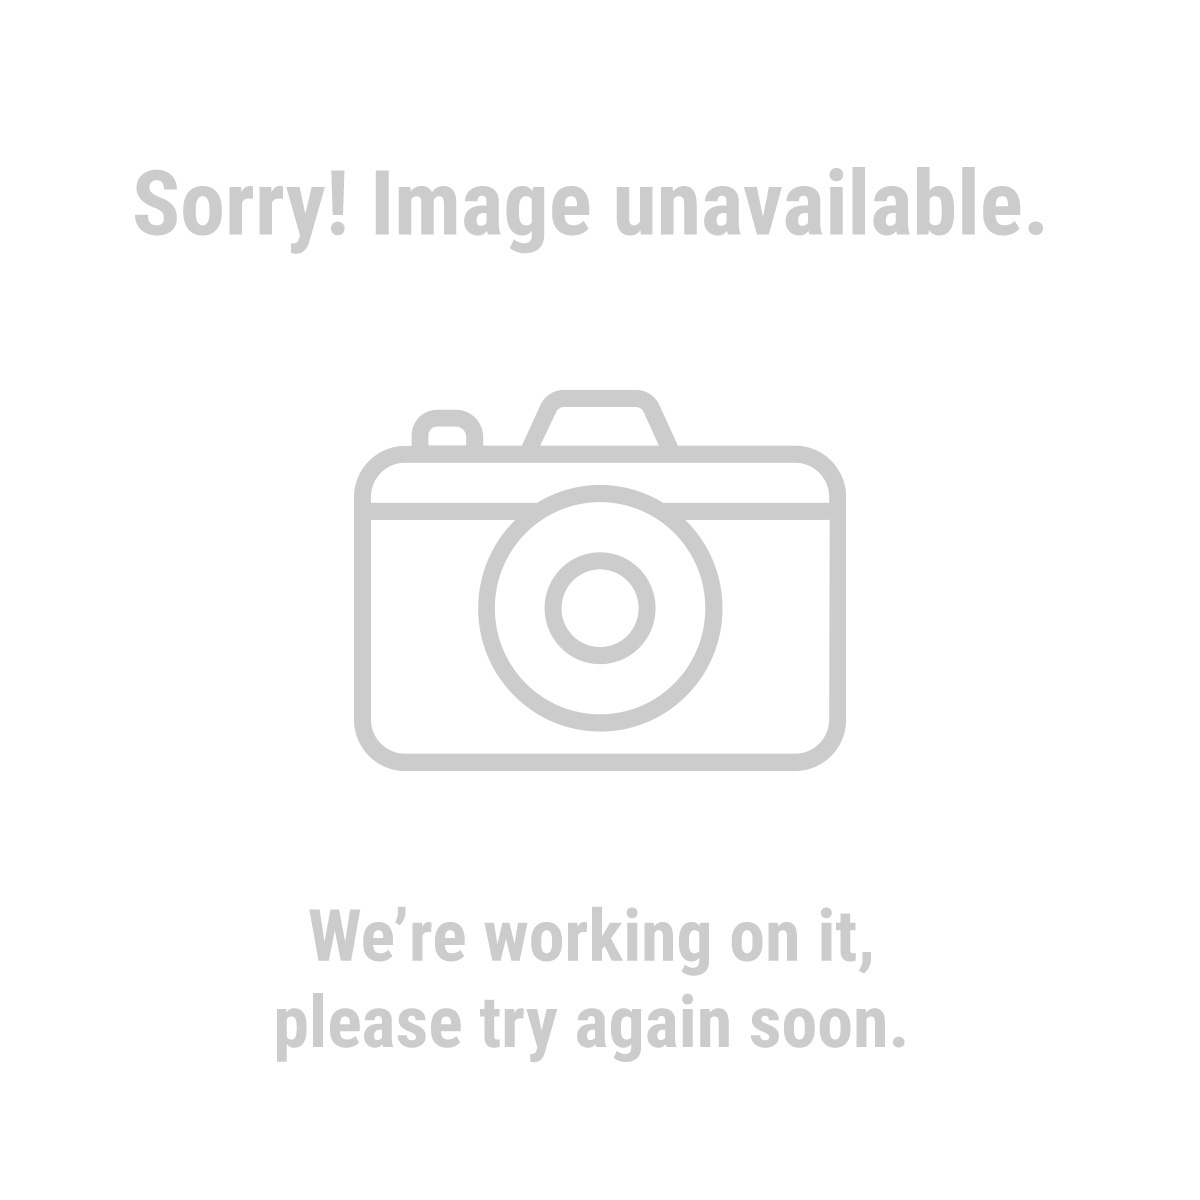 61651 6 in. Heavy Duty Swivel Caster